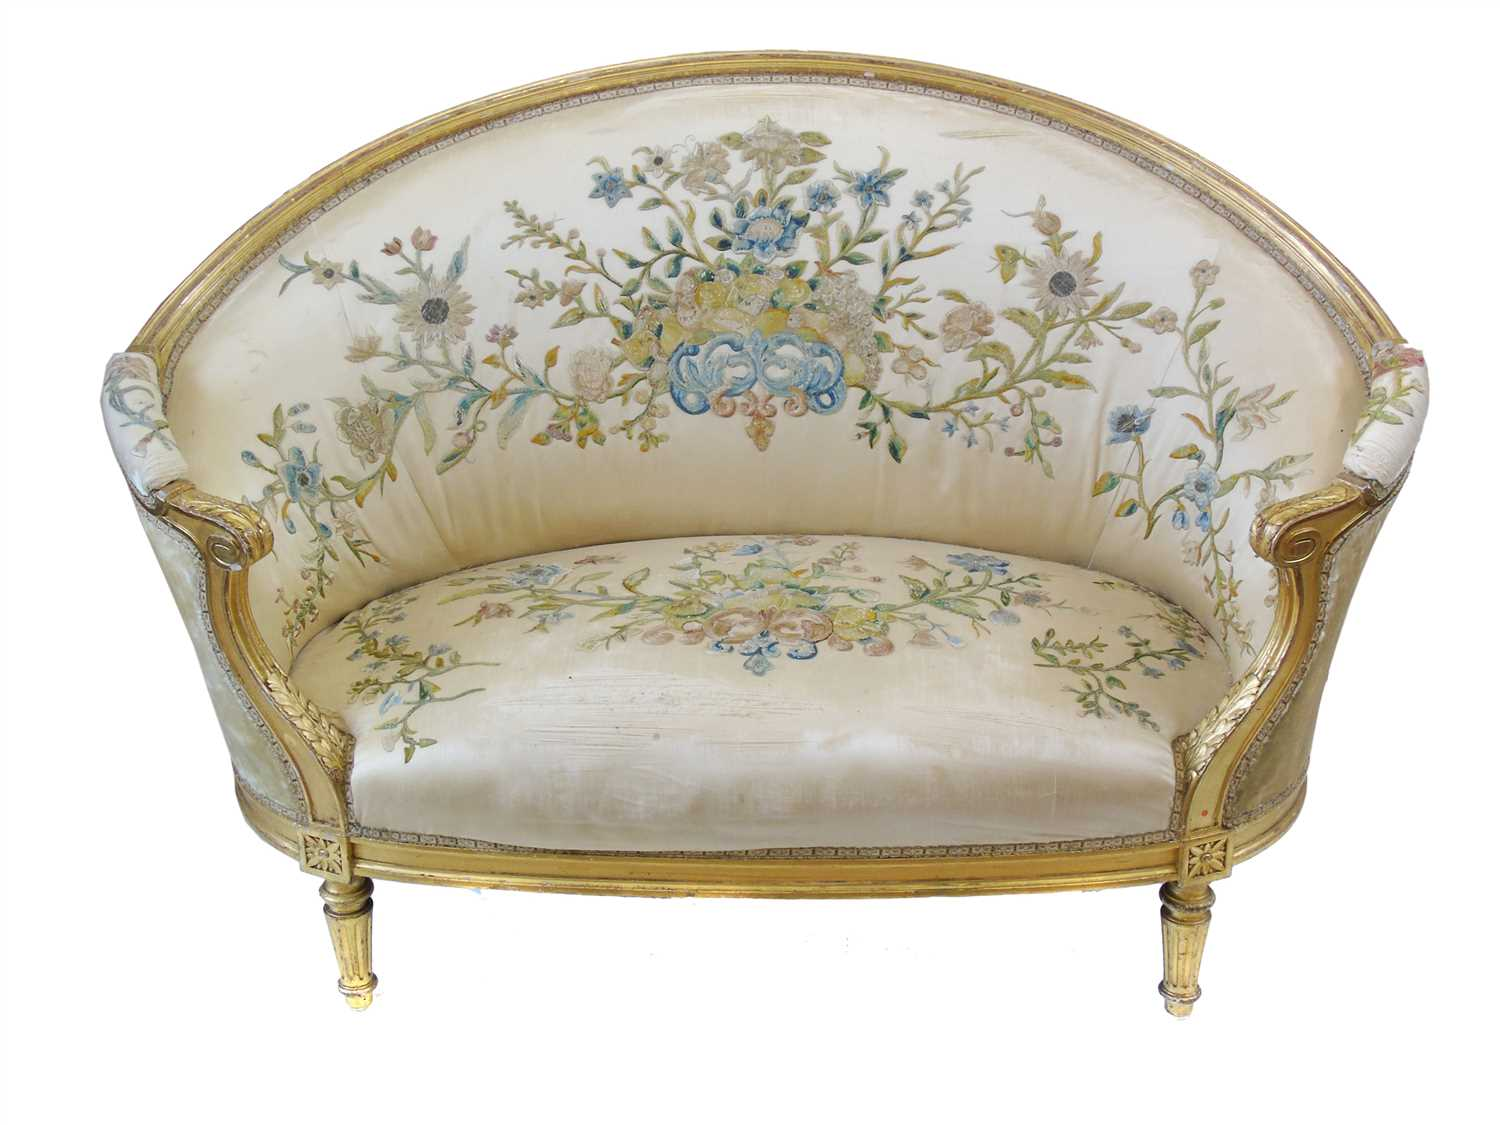 190 - Mid 19th century French gesso framed two seater sofa